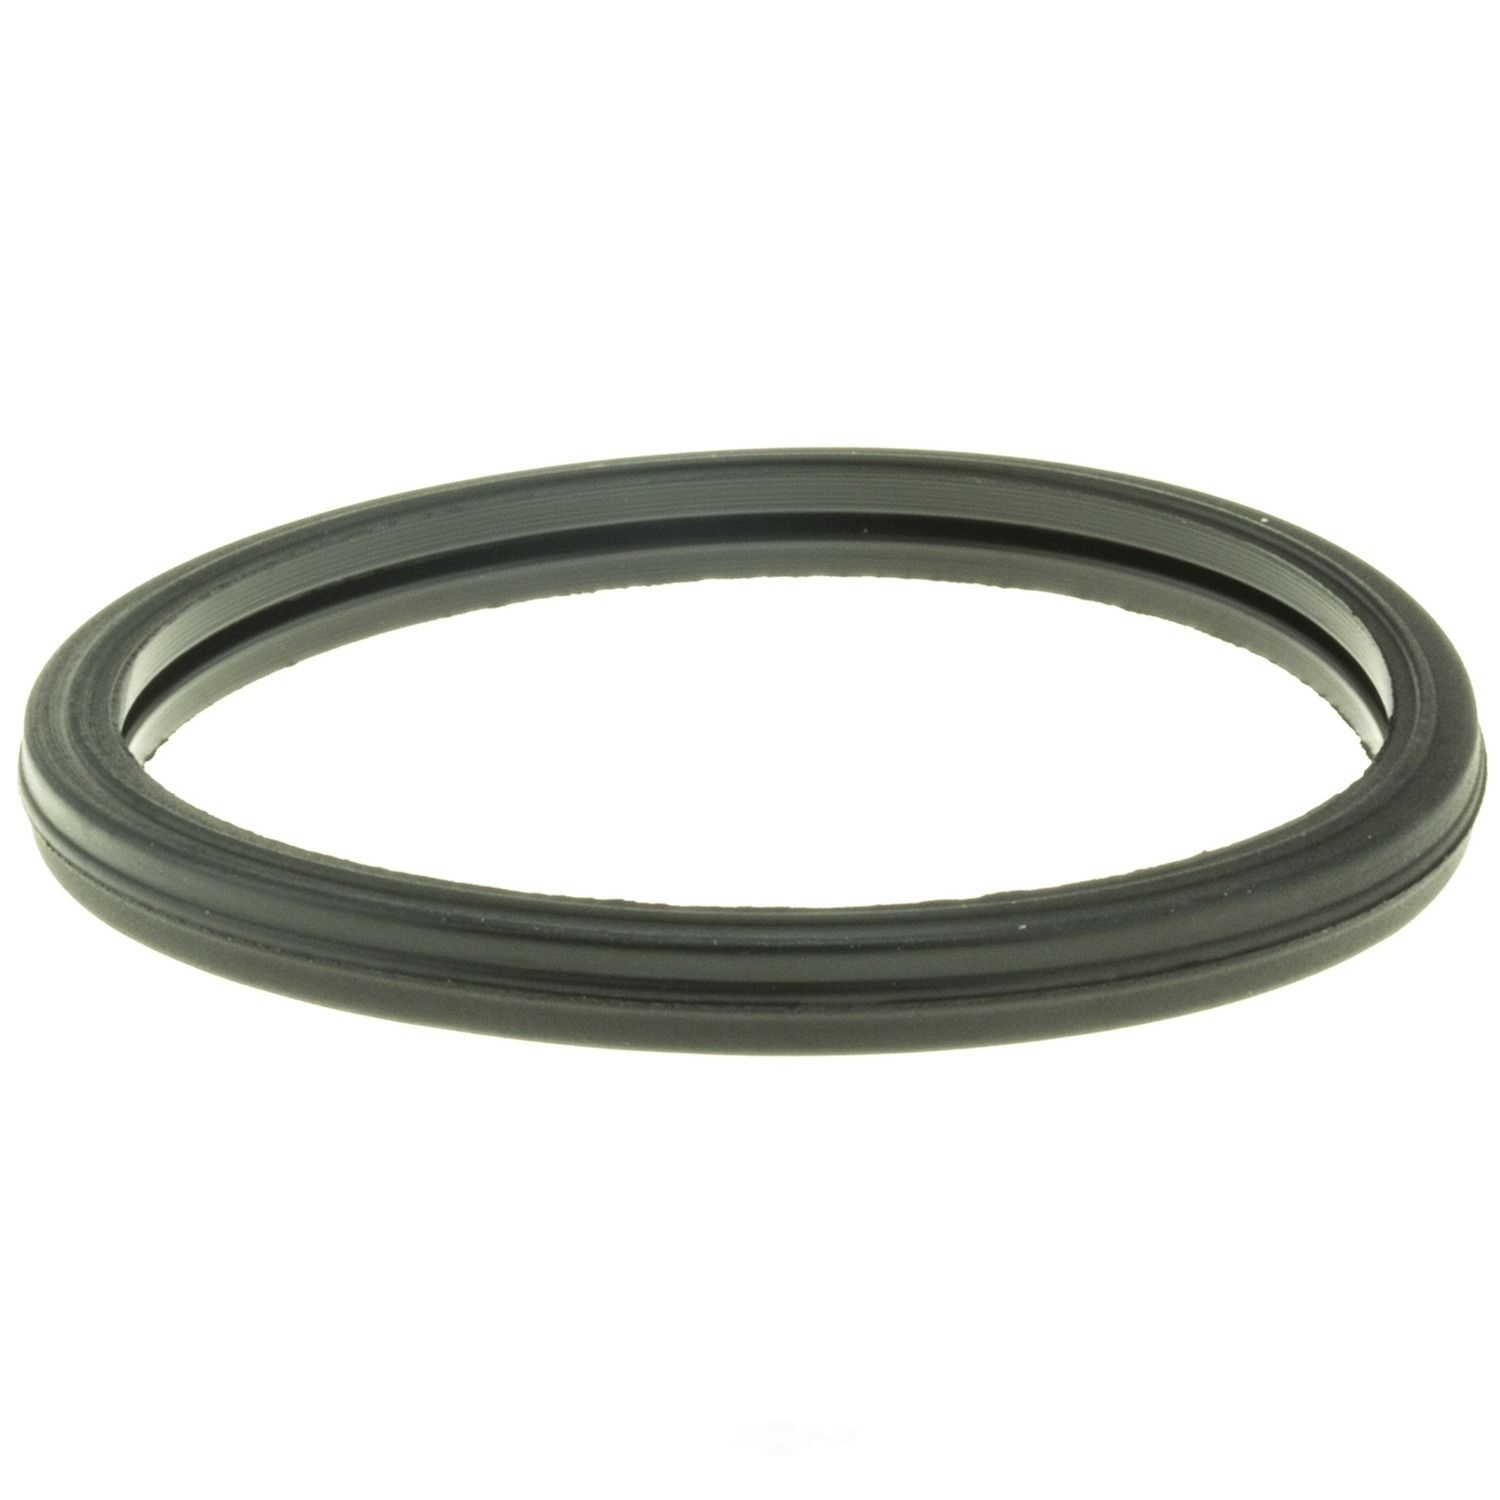 STANT - Thermostat Seal - STN 27286